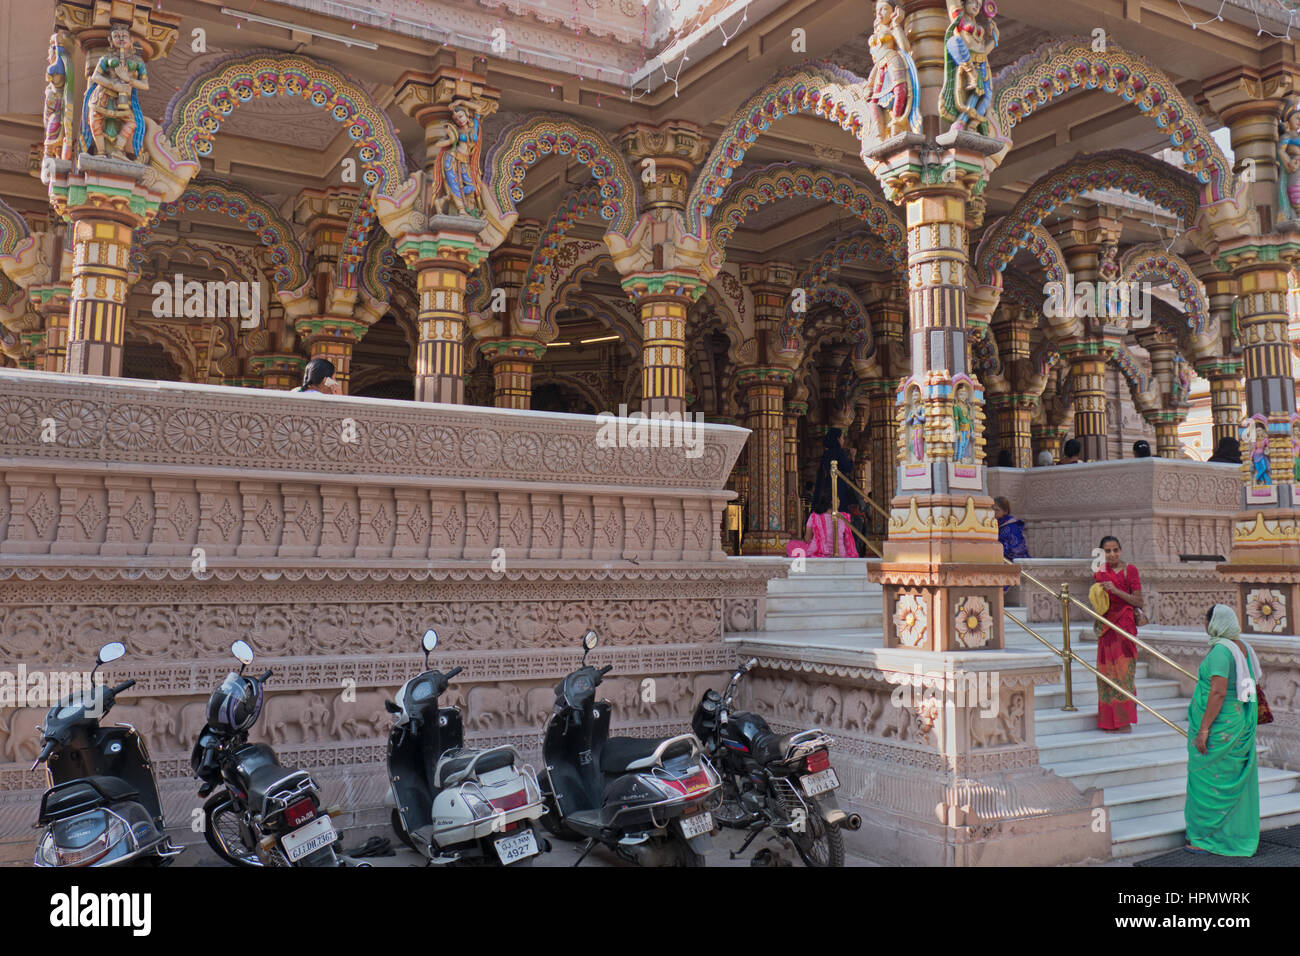 Transport belonging to Hindu devotees parked outside the colorful two hundred years old Shri Swaminarayan Hindu - Stock Image